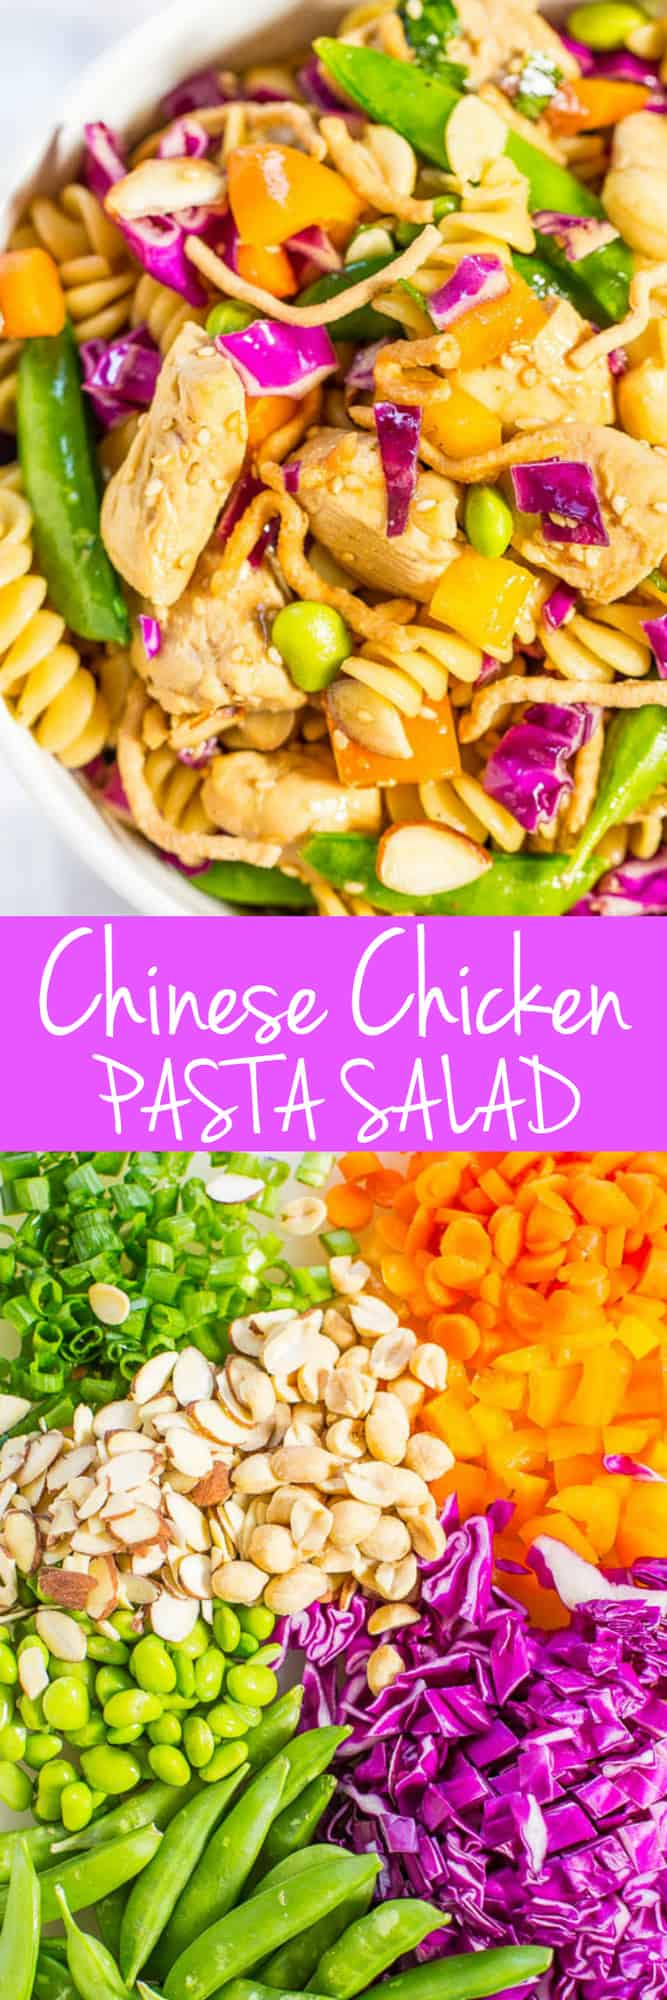 Asian Pasta Salad with Chicken — Big juicy chicken chunks and texture galore from the rainbow of crispy veggies! Fast, easy, fresh and healthy!! Great for picnics, potlucks, and easy dinners!!